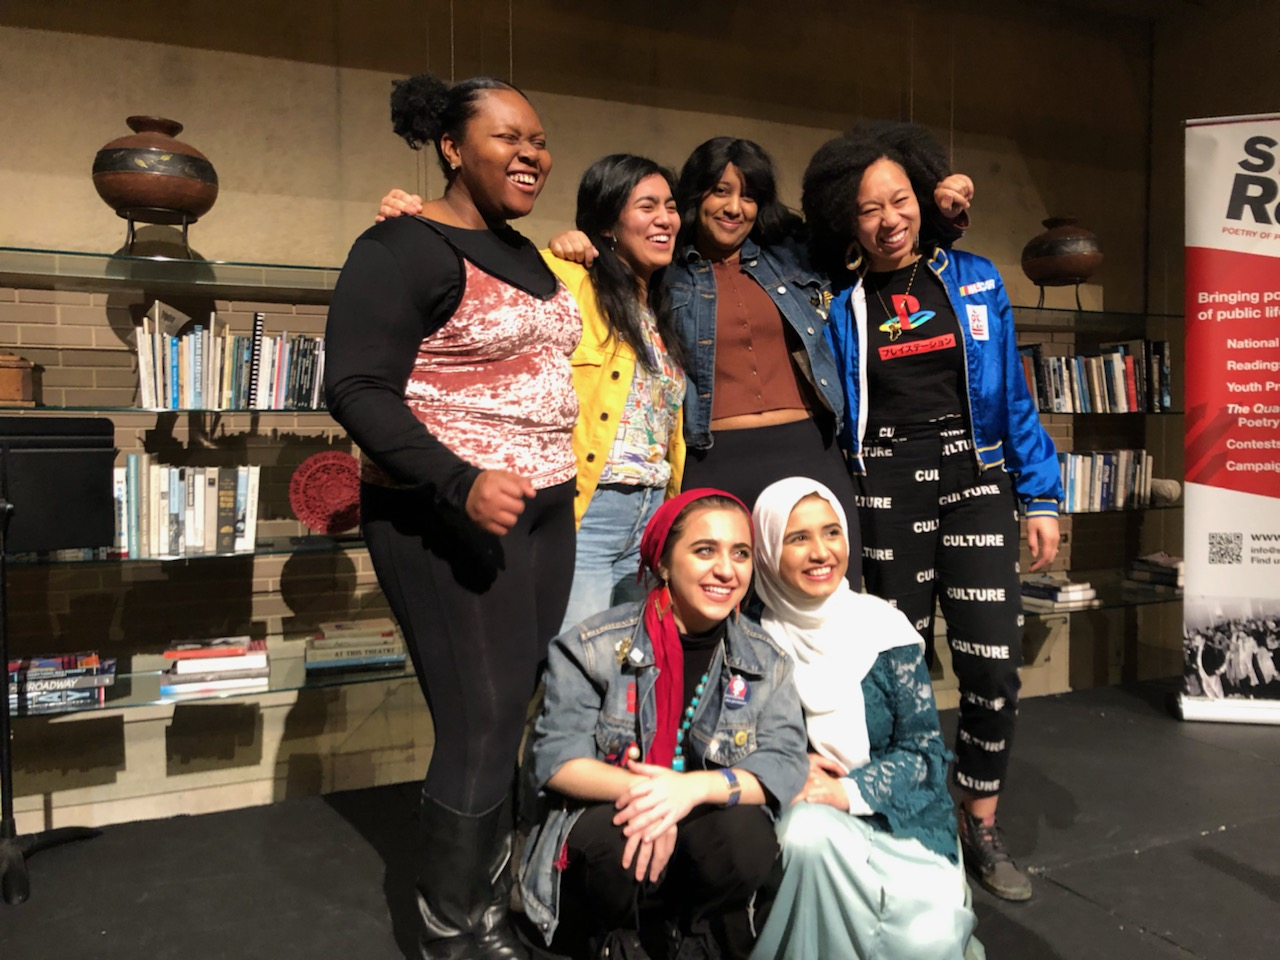 Group photo of the DC Youth Slam Team.